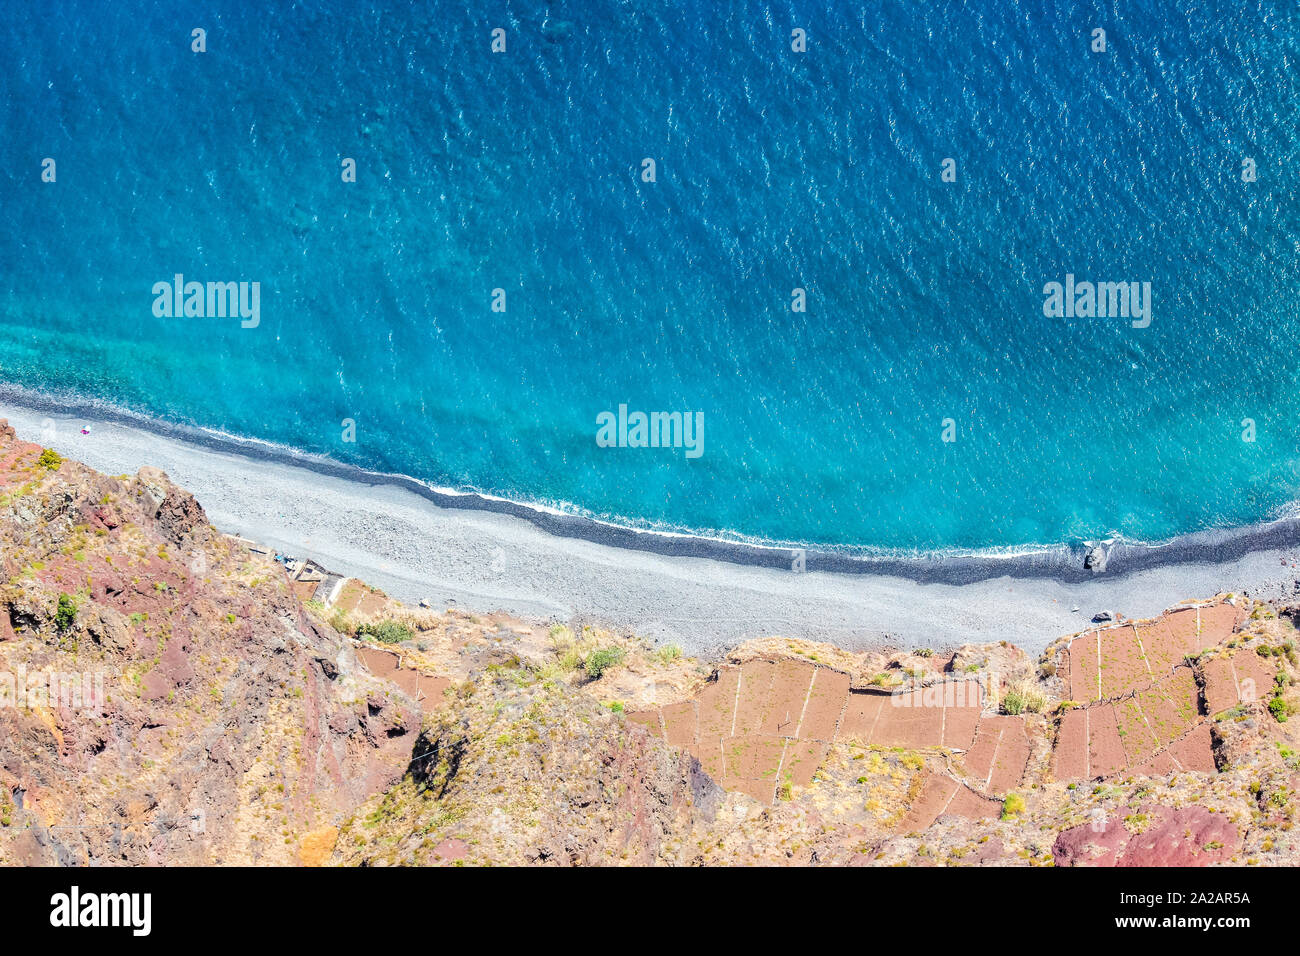 Aerial view of the blue Atlantic ocean, beach and adjacent fields on the southern coast of Madeira Island, Portugal. Aerial landscape, amazing nature. Summer vibes. Stock Photo